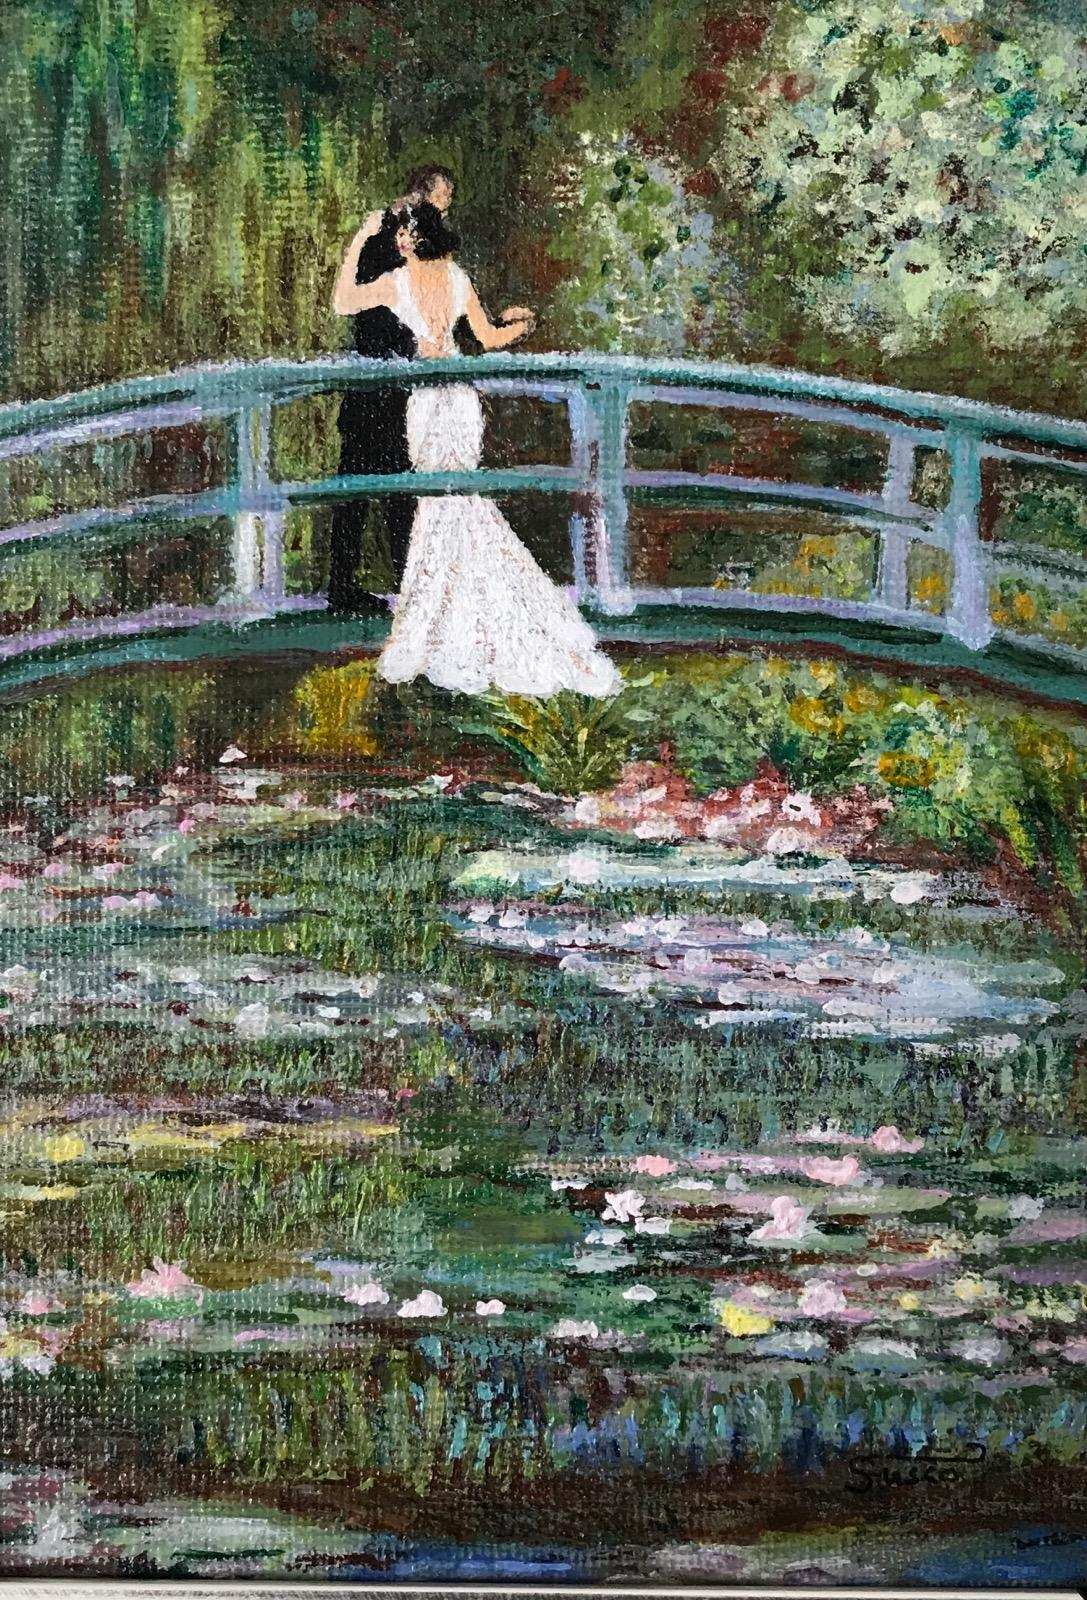 Rendition of Claude Monet's The Japanese Footbridge by Susan